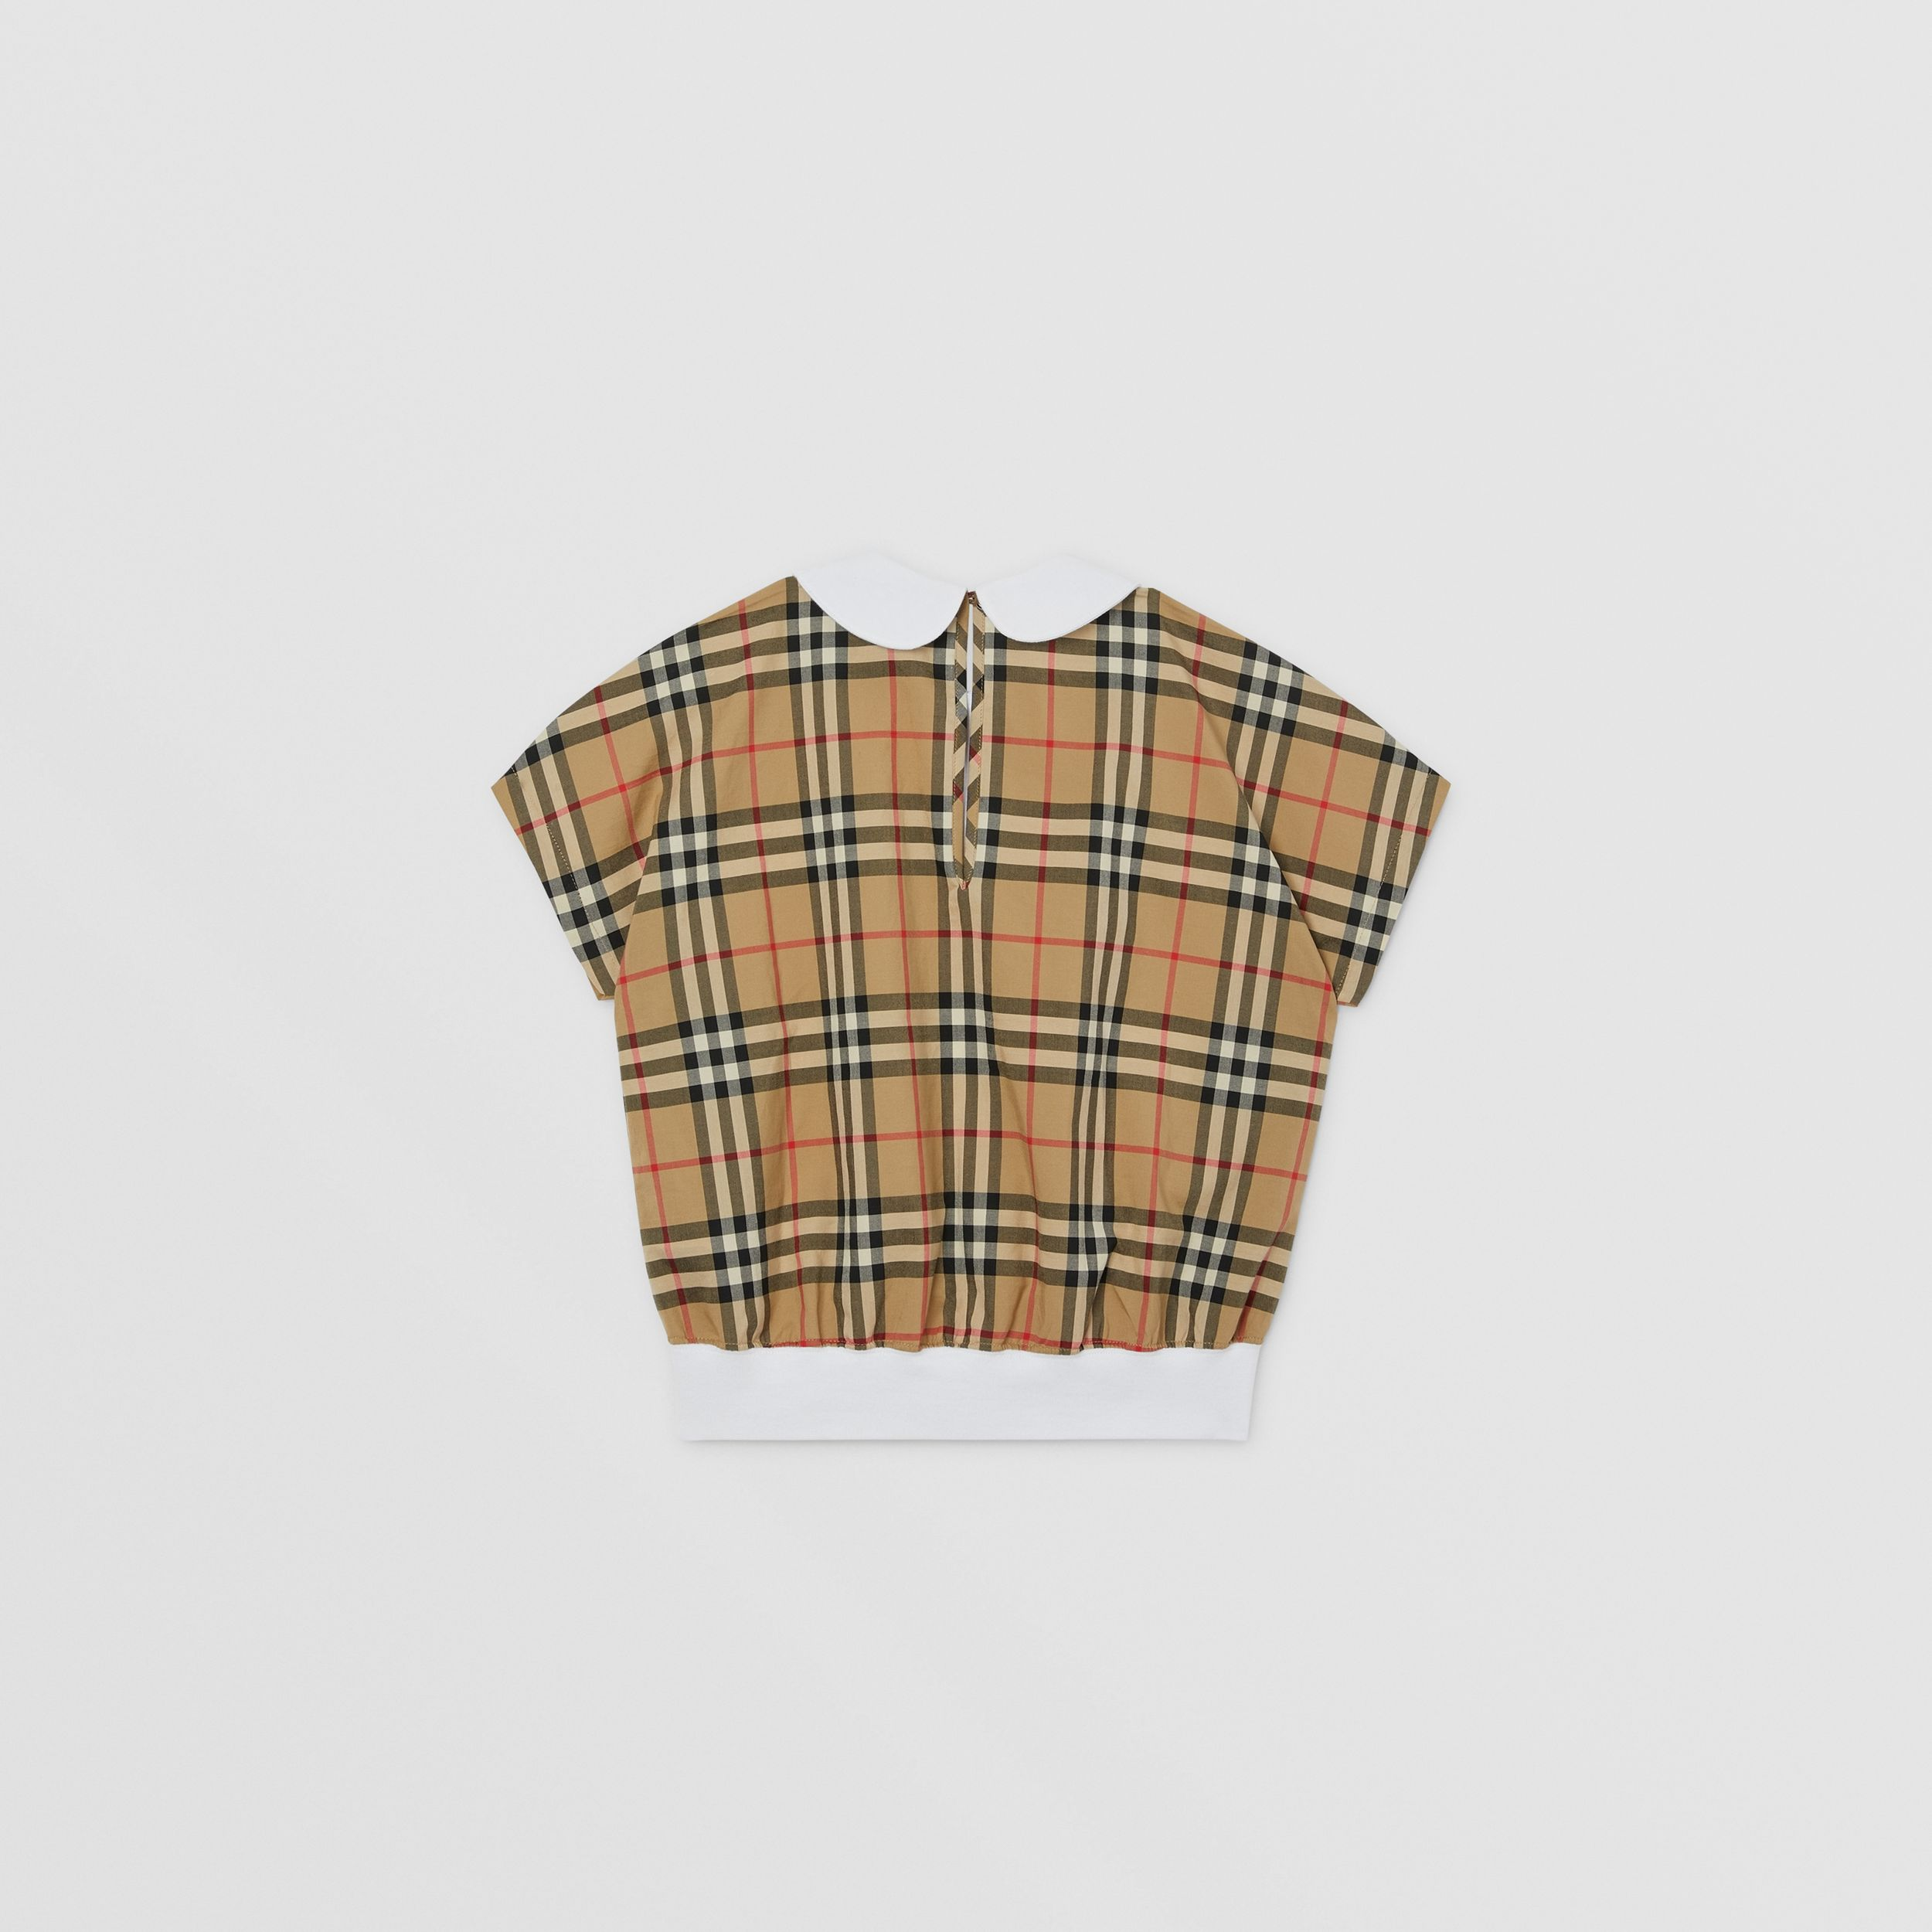 Monogram Motif Vintage Check Panel Cotton T-shirt in Archive Beige | Burberry Canada - 4